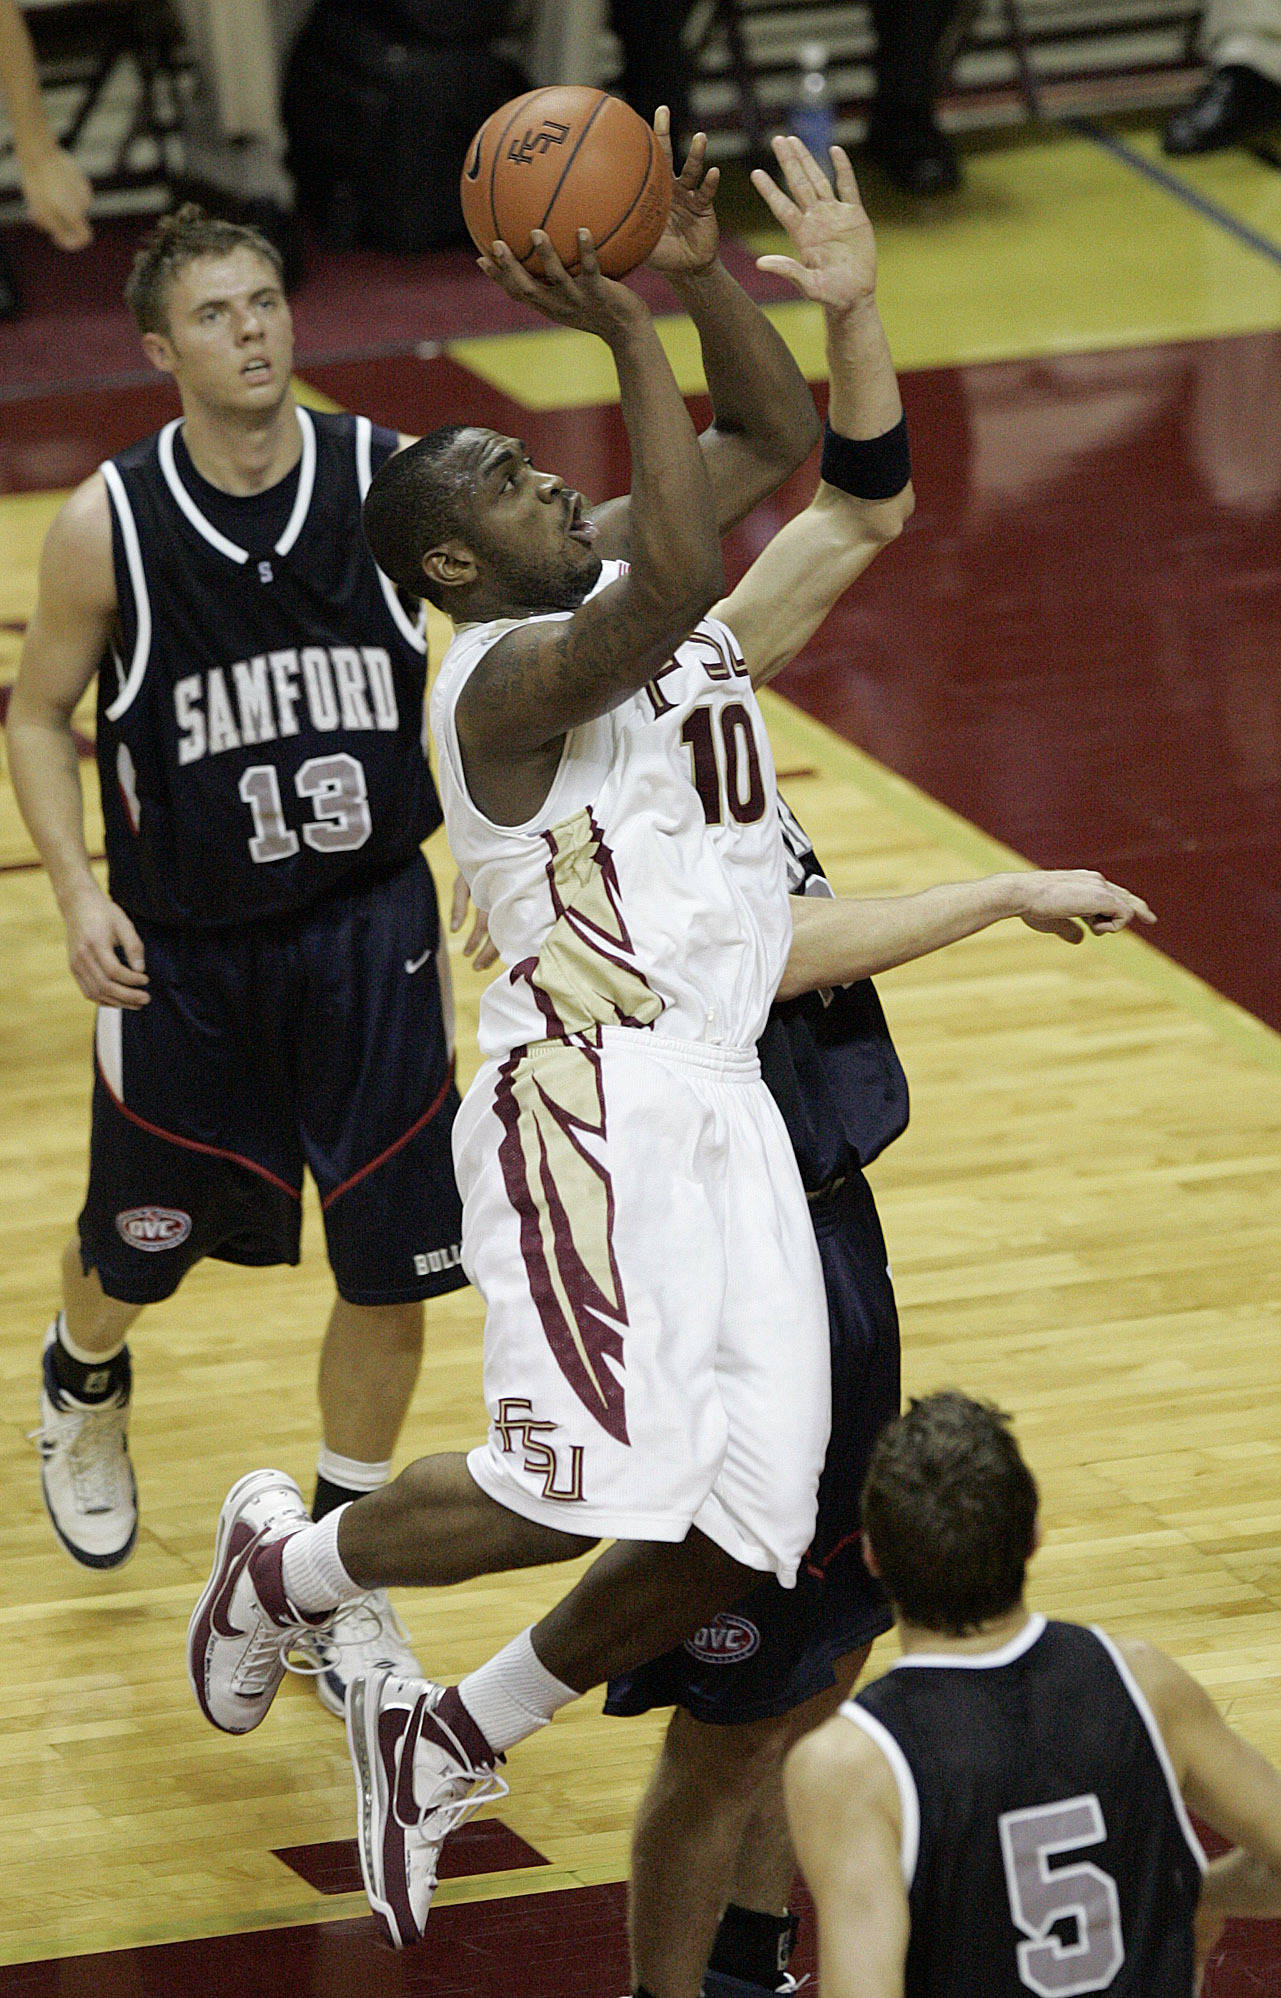 Florida State's Ralph Mims splits the Samford defense to score in the second half of a college basketball game which FSU won 61-45 on Sunday Dec. 2, 2007, in Tallahassee, Fla. (AP Photo/Steve Cannon)